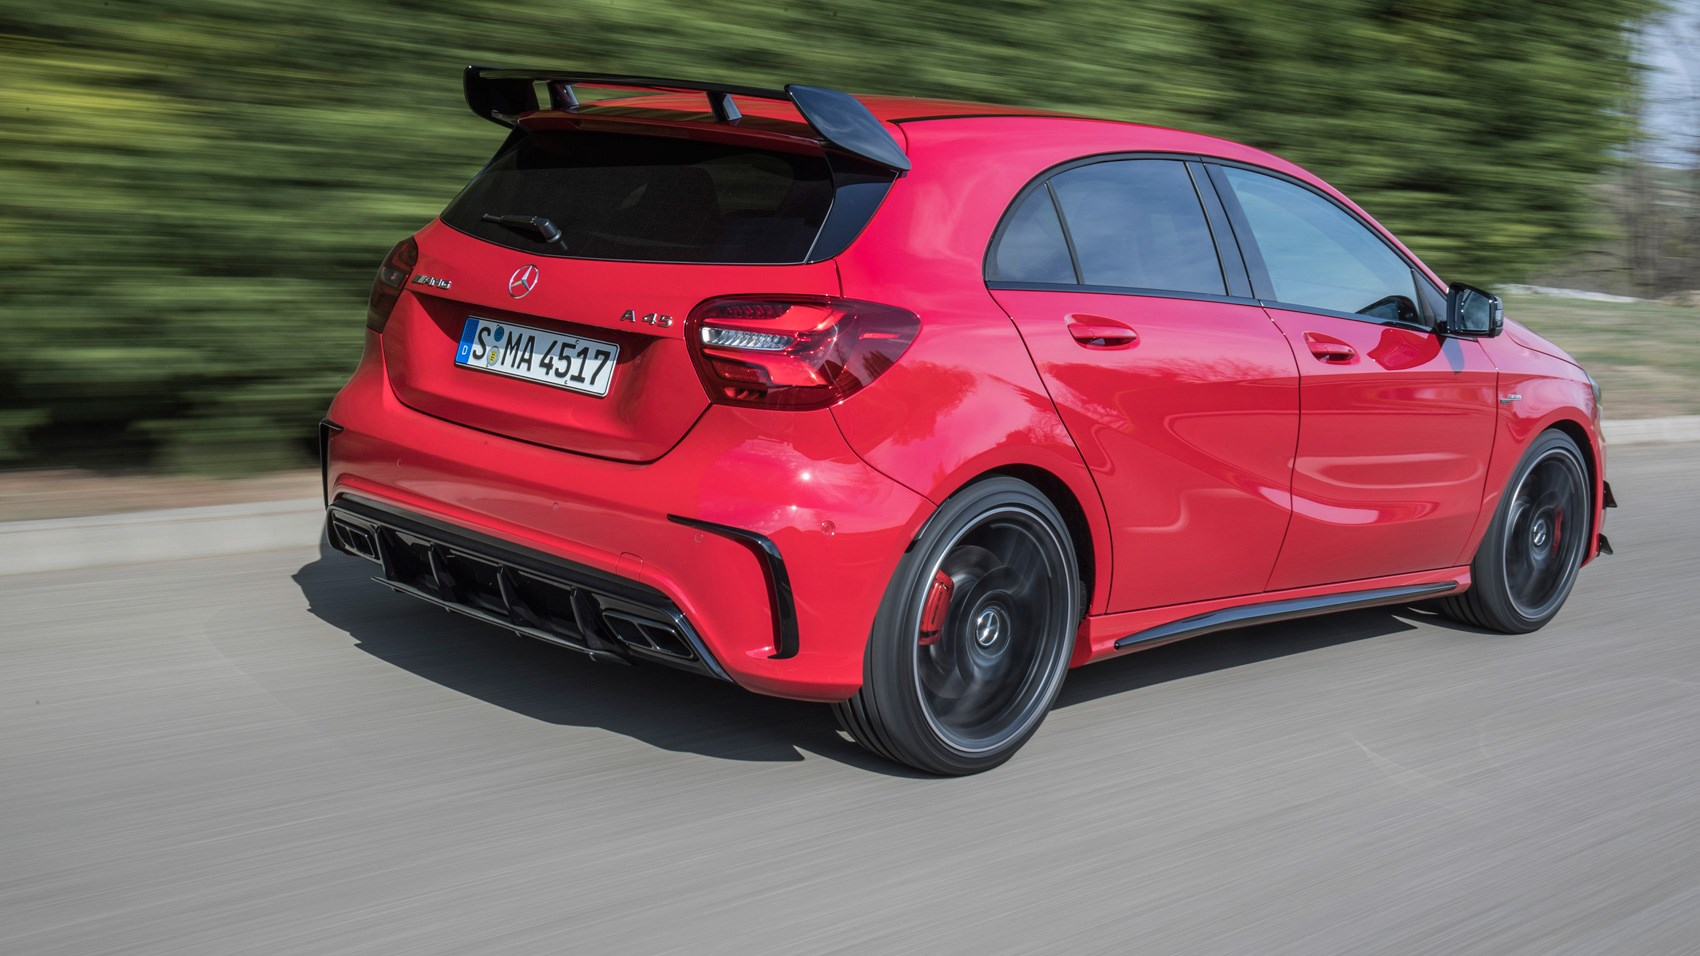 Mercedes amg a45 2017 review car magazine for Mercedes benz a45 amg